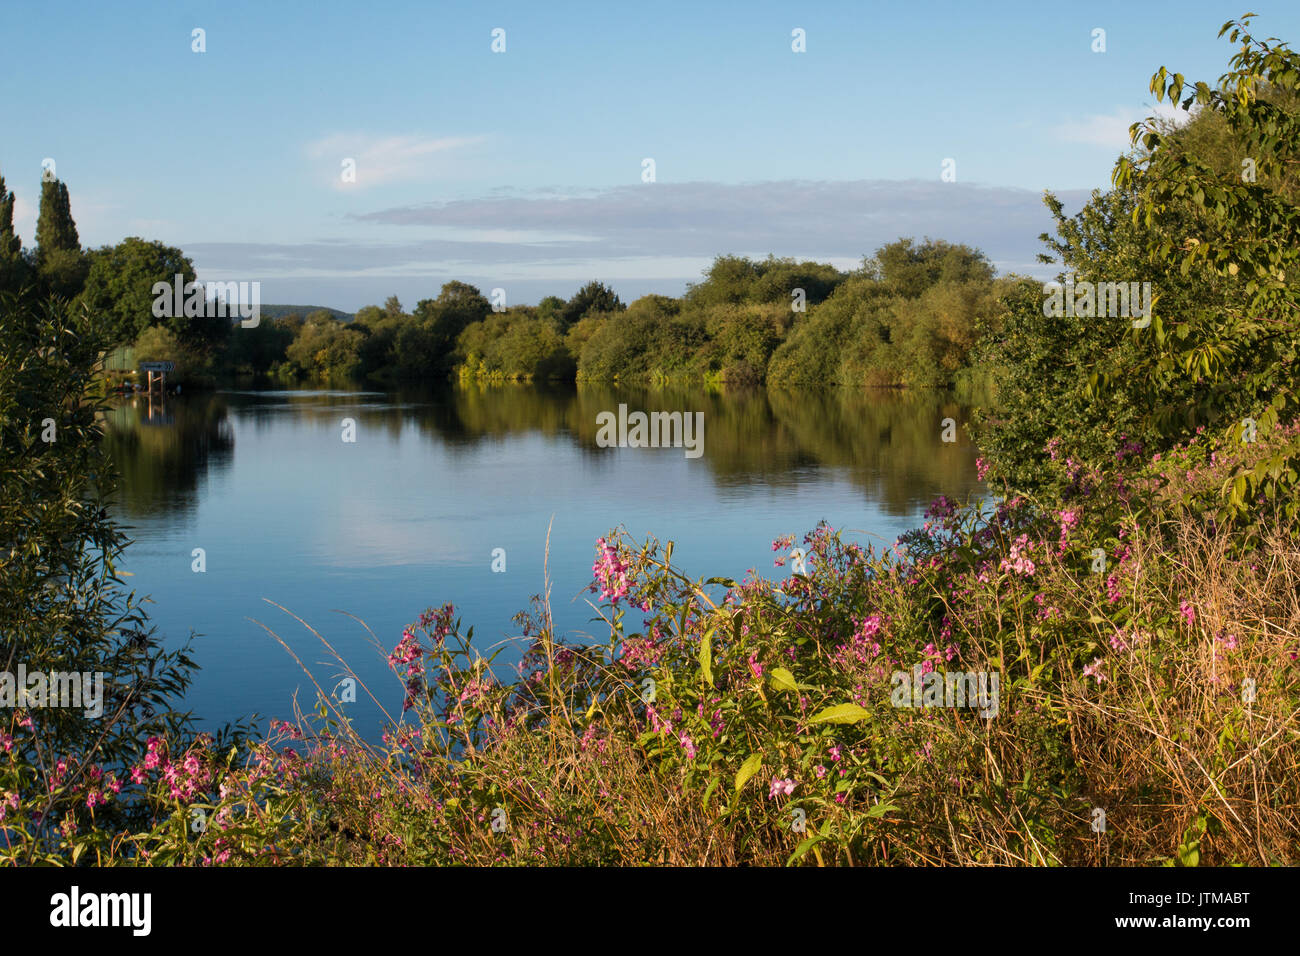 Himalayan Balsam (Impatiens glandulifera), an invasive species, on the banks of the River Trent, Nottinghamshire - Stock Image